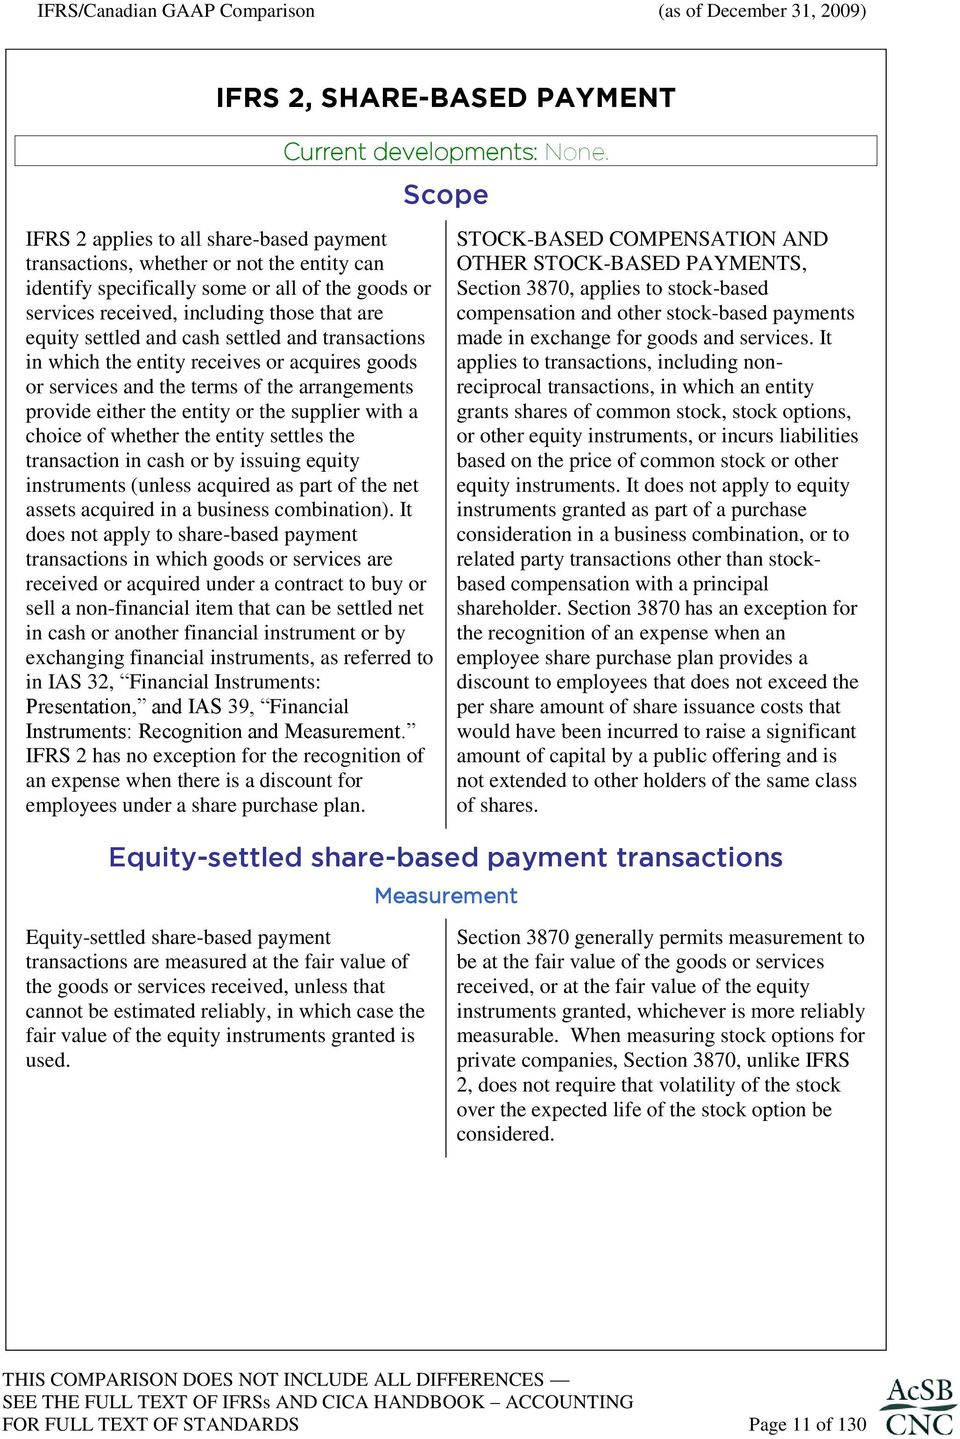 choice of whether the entity settles the transaction in cash or by issuing equity instruments (unless acquired as part of the net assets acquired in a business combination).